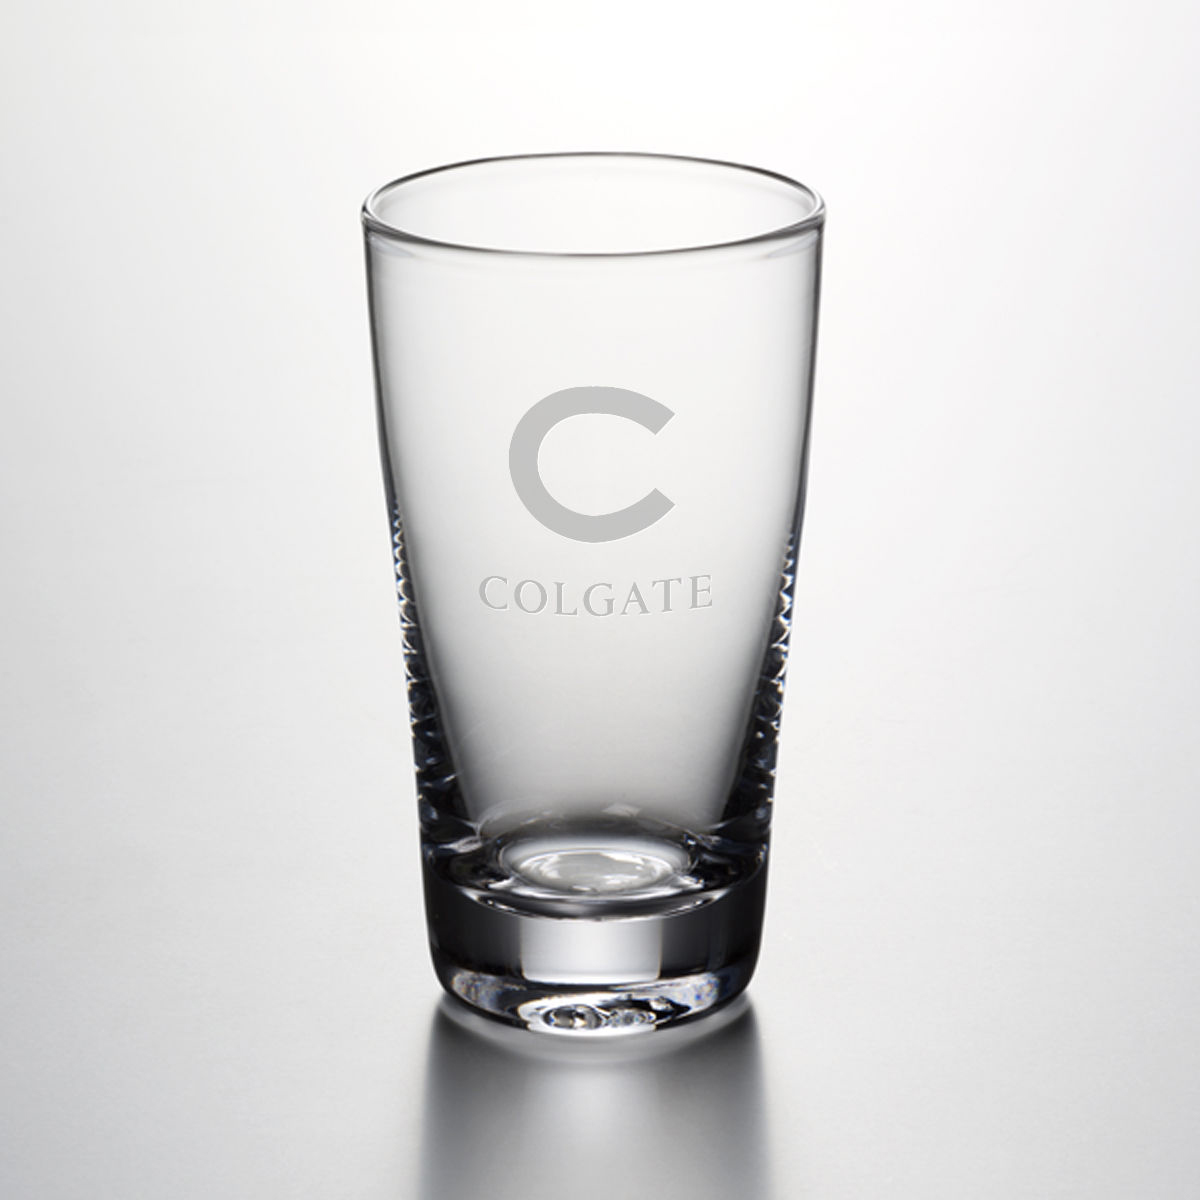 Colgate Ascutney Pint Glass by Simon Pearce